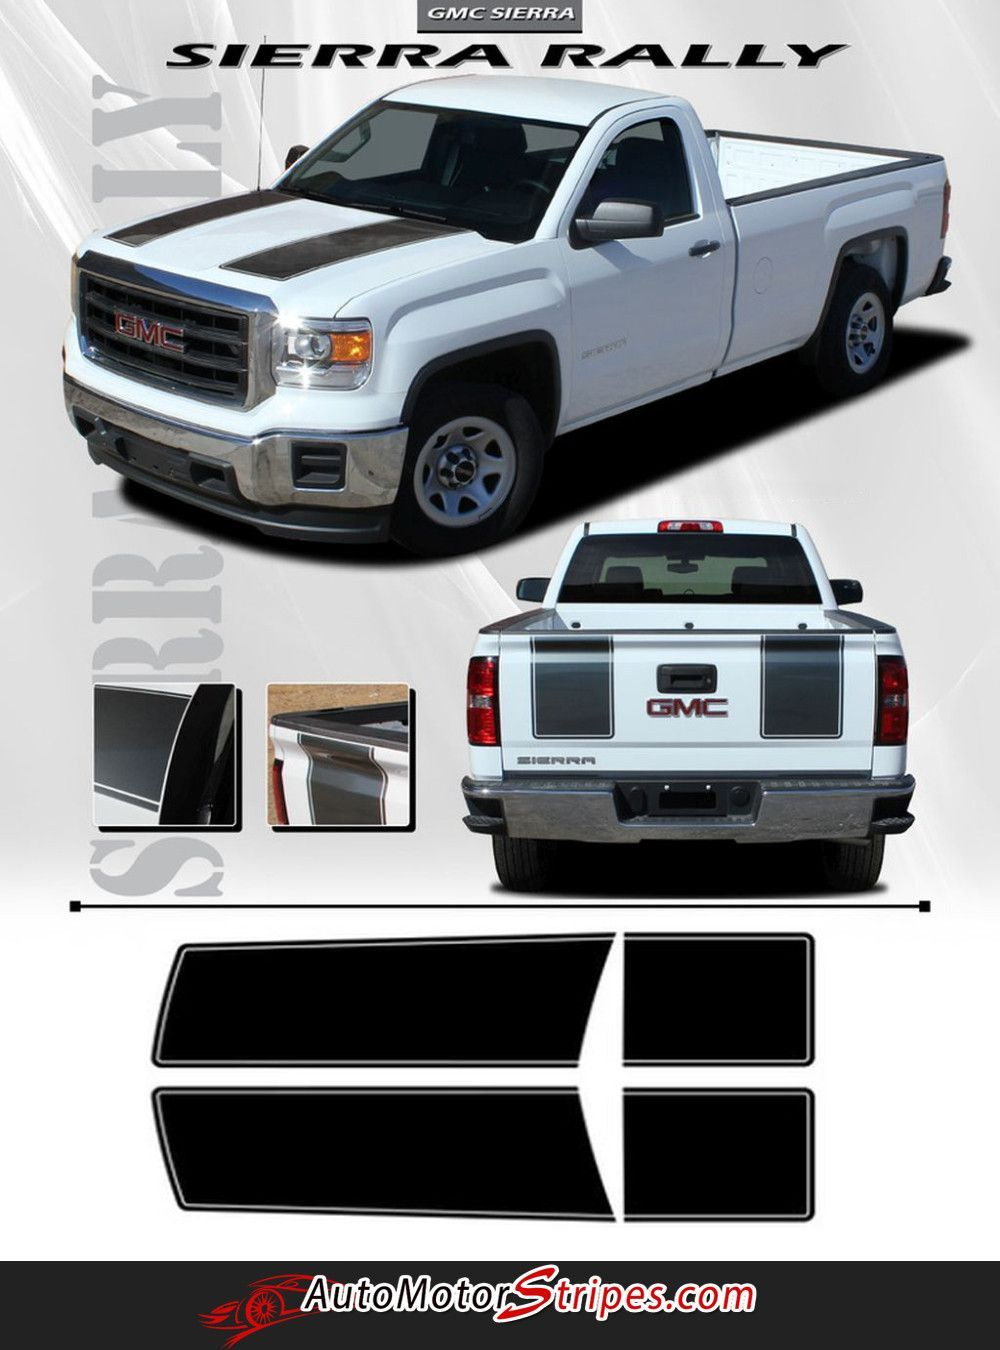 medium resolution of 2014 2016 gmc sierra rally oe factory style edition truck hood tailgate racing vinyl graphics stripes kit